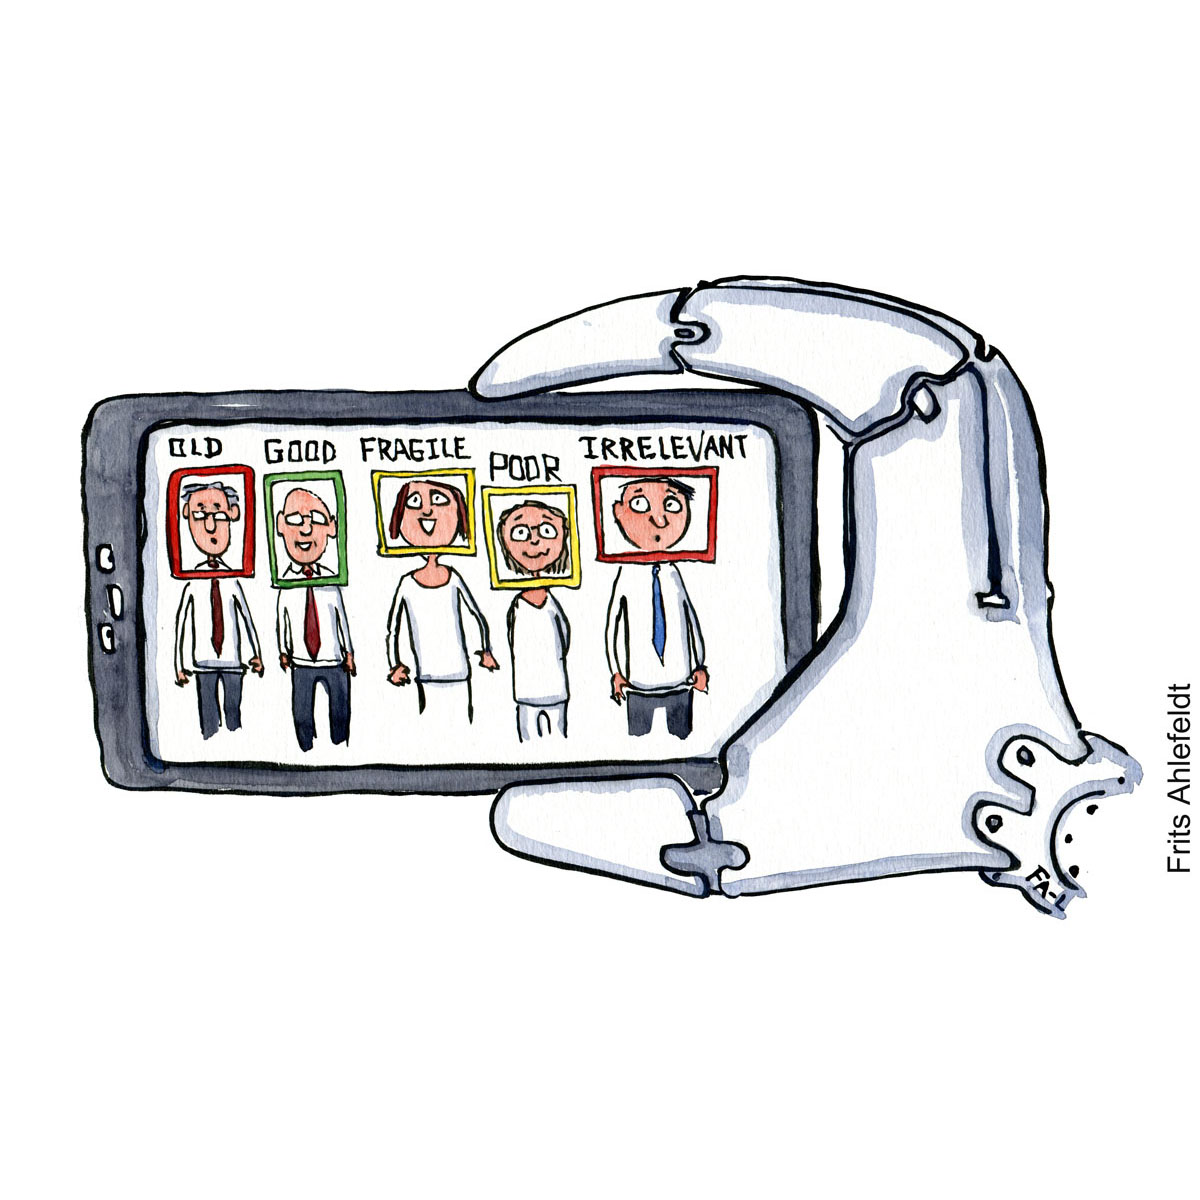 Drawing of a robot hand holding a phone with face evaluation of people. Hand drawn illustration by Frits Ahlefeldt